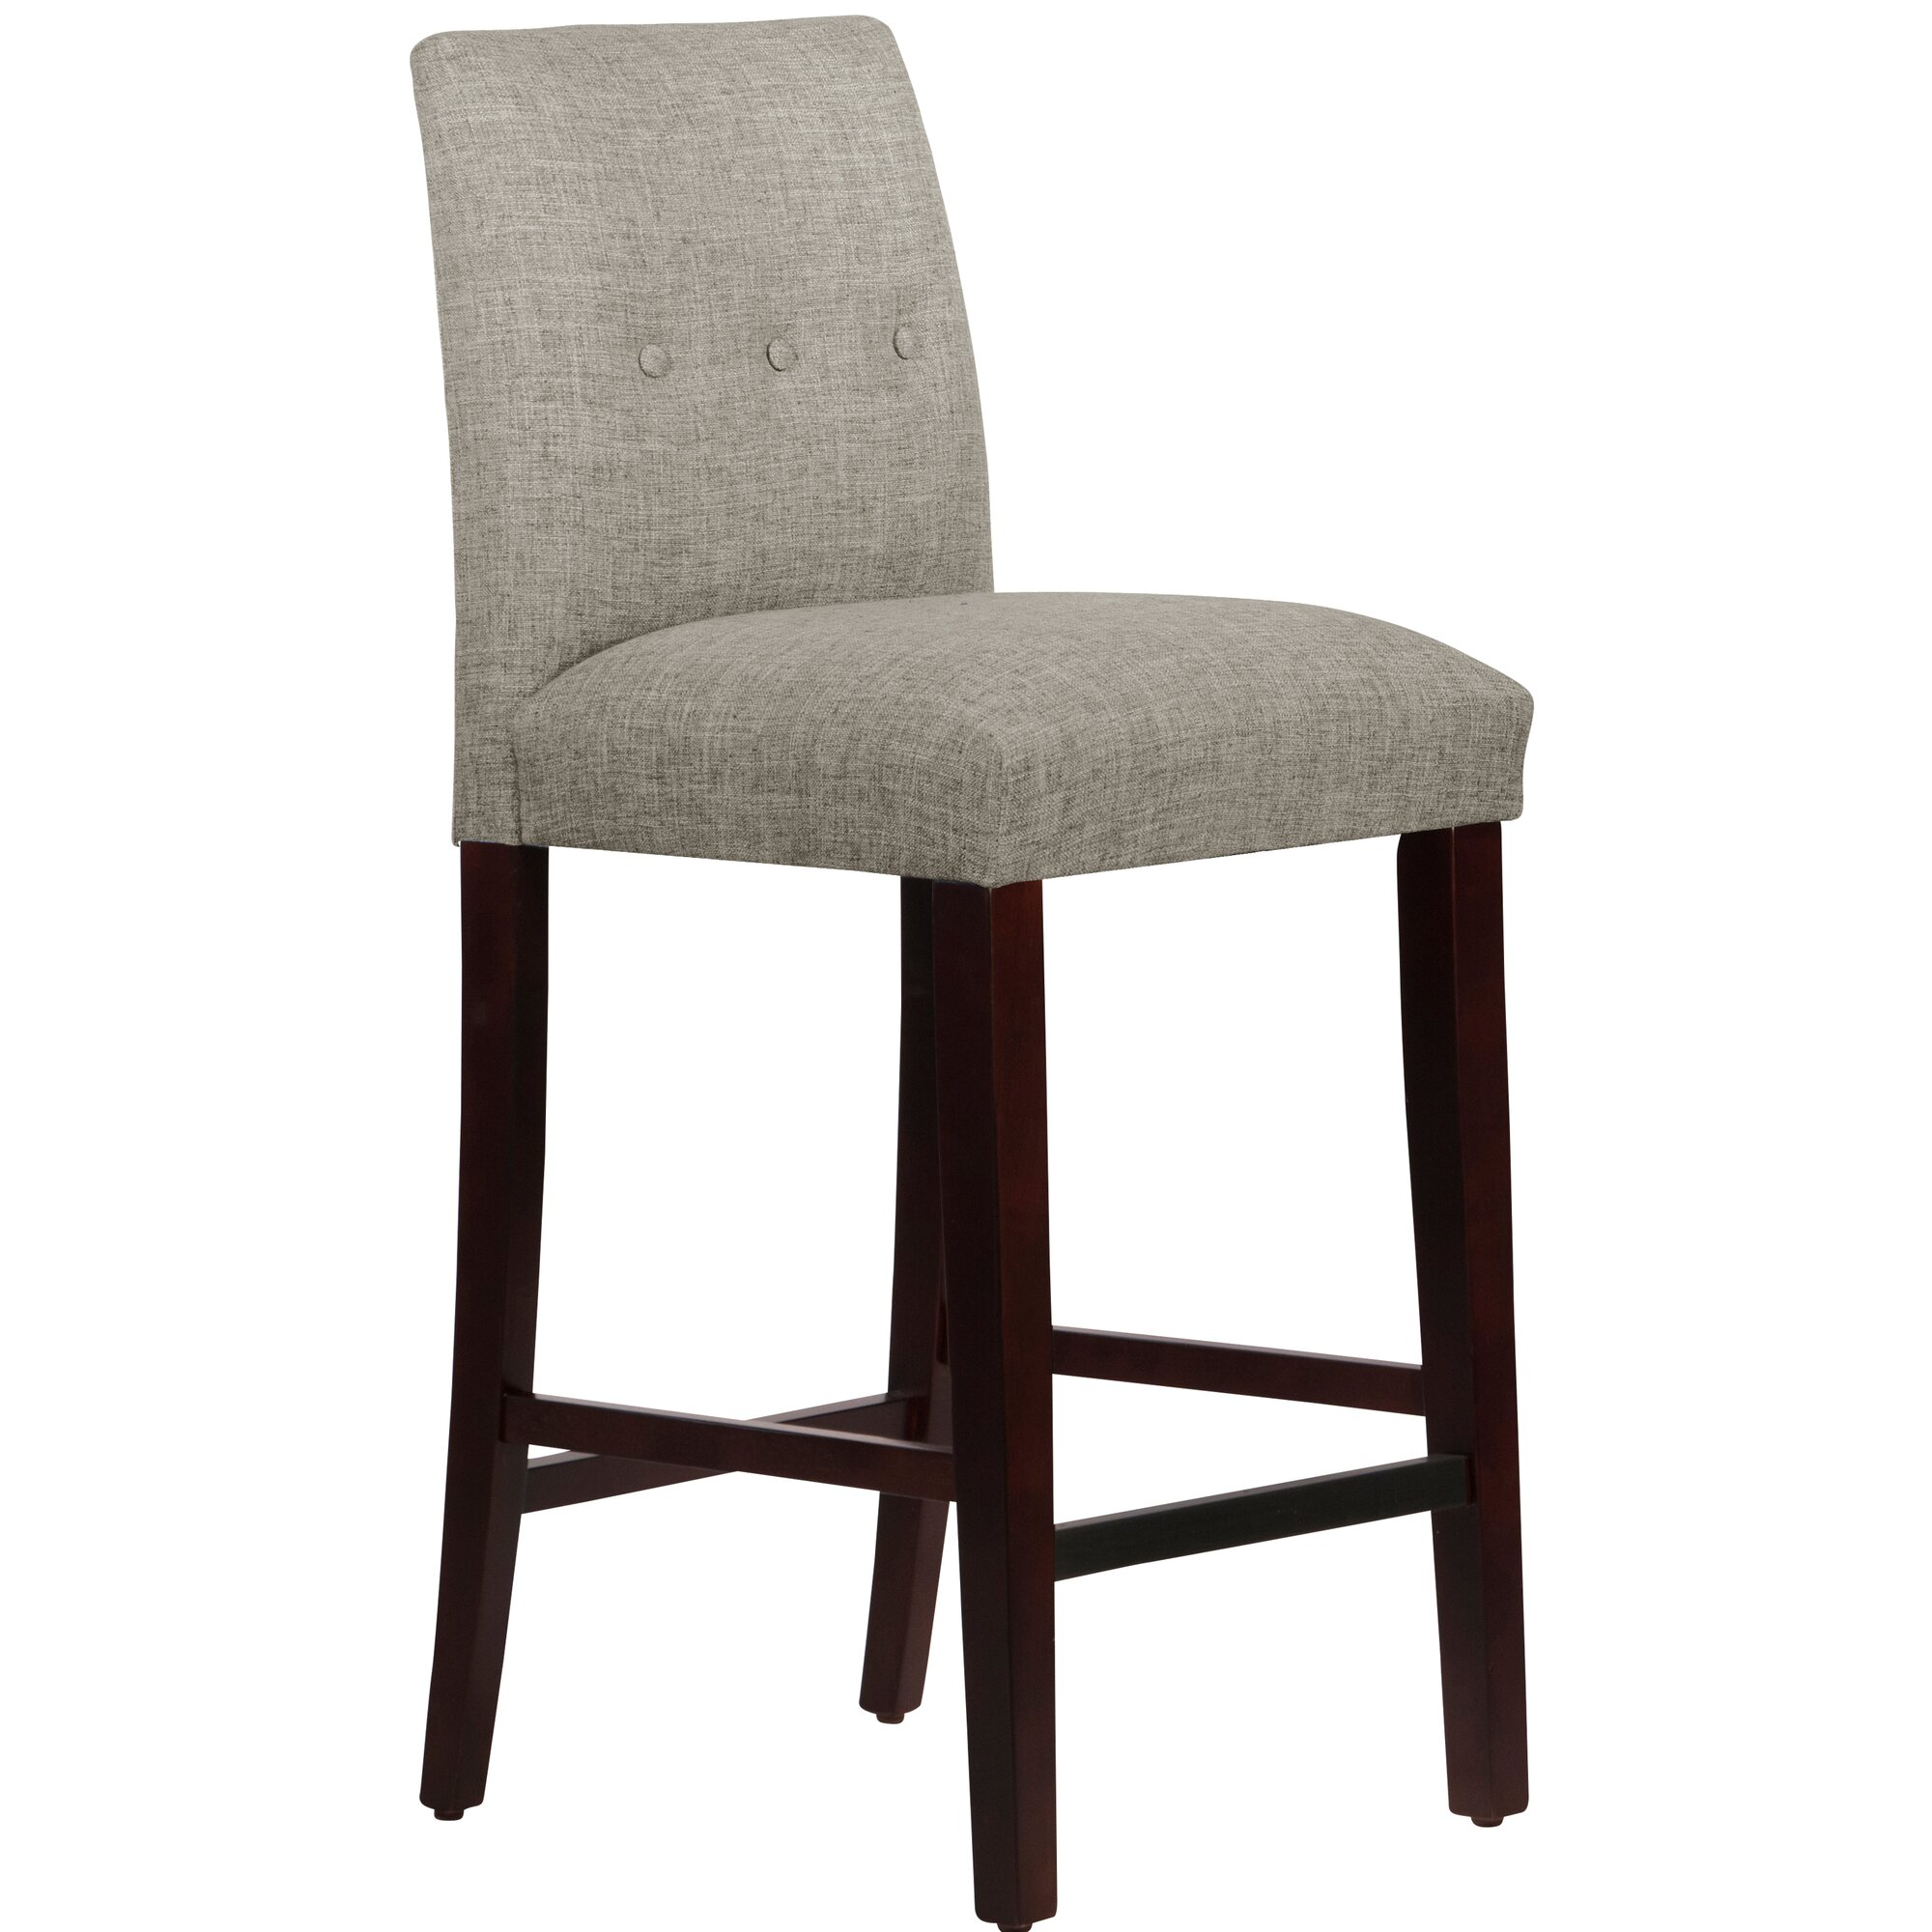 Darby Home Co Cyrus Bar Stool Wayfair